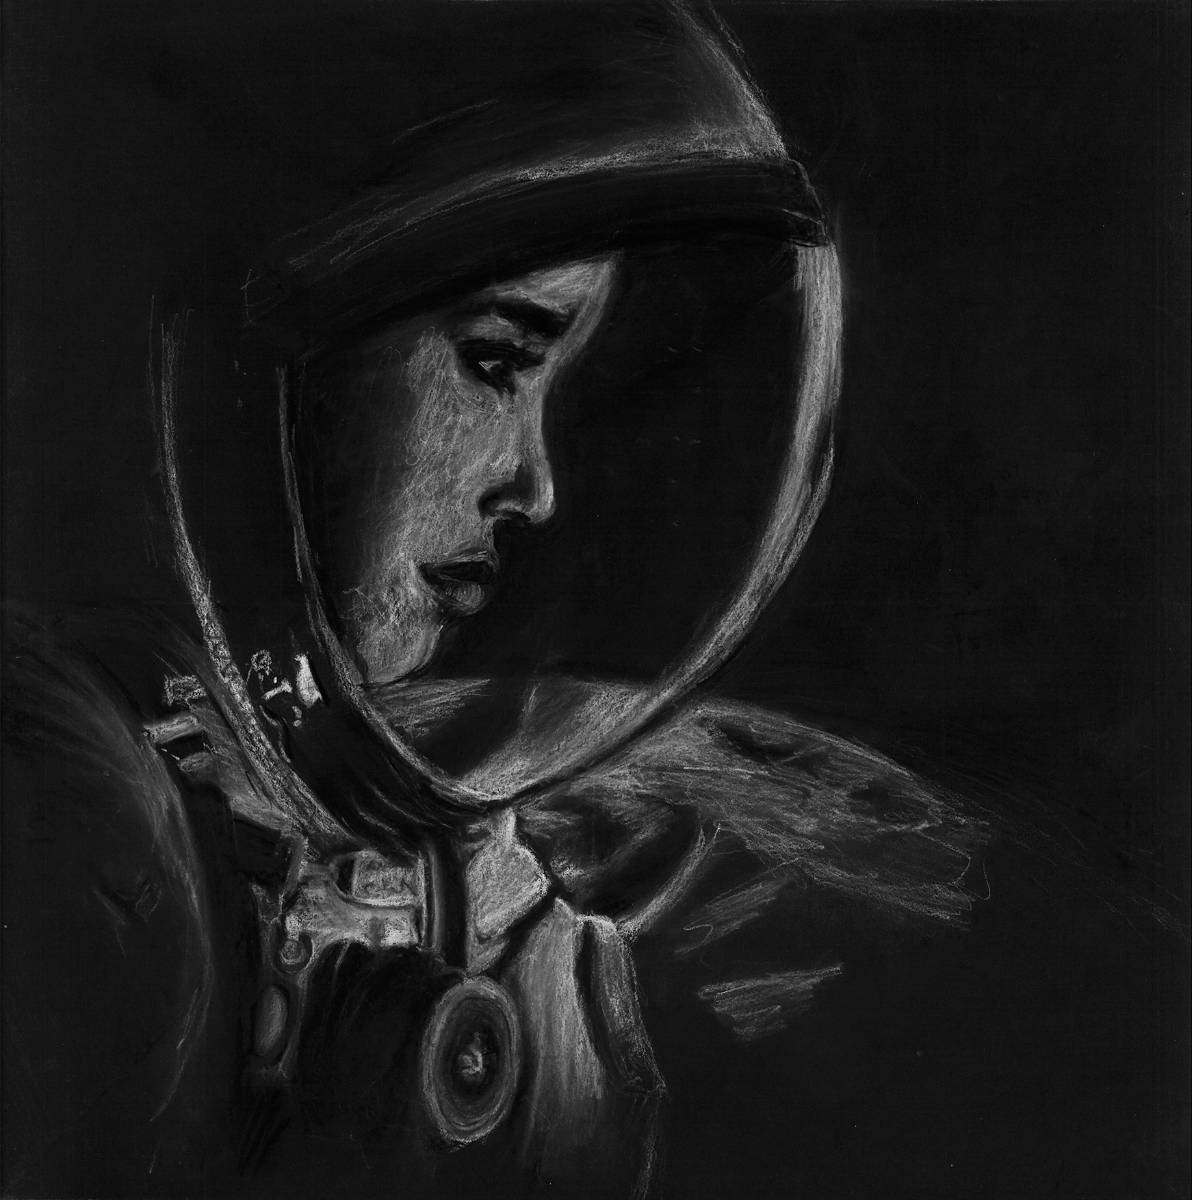 20burkwoodi Beyond Charcoal On Paper 30x30cm